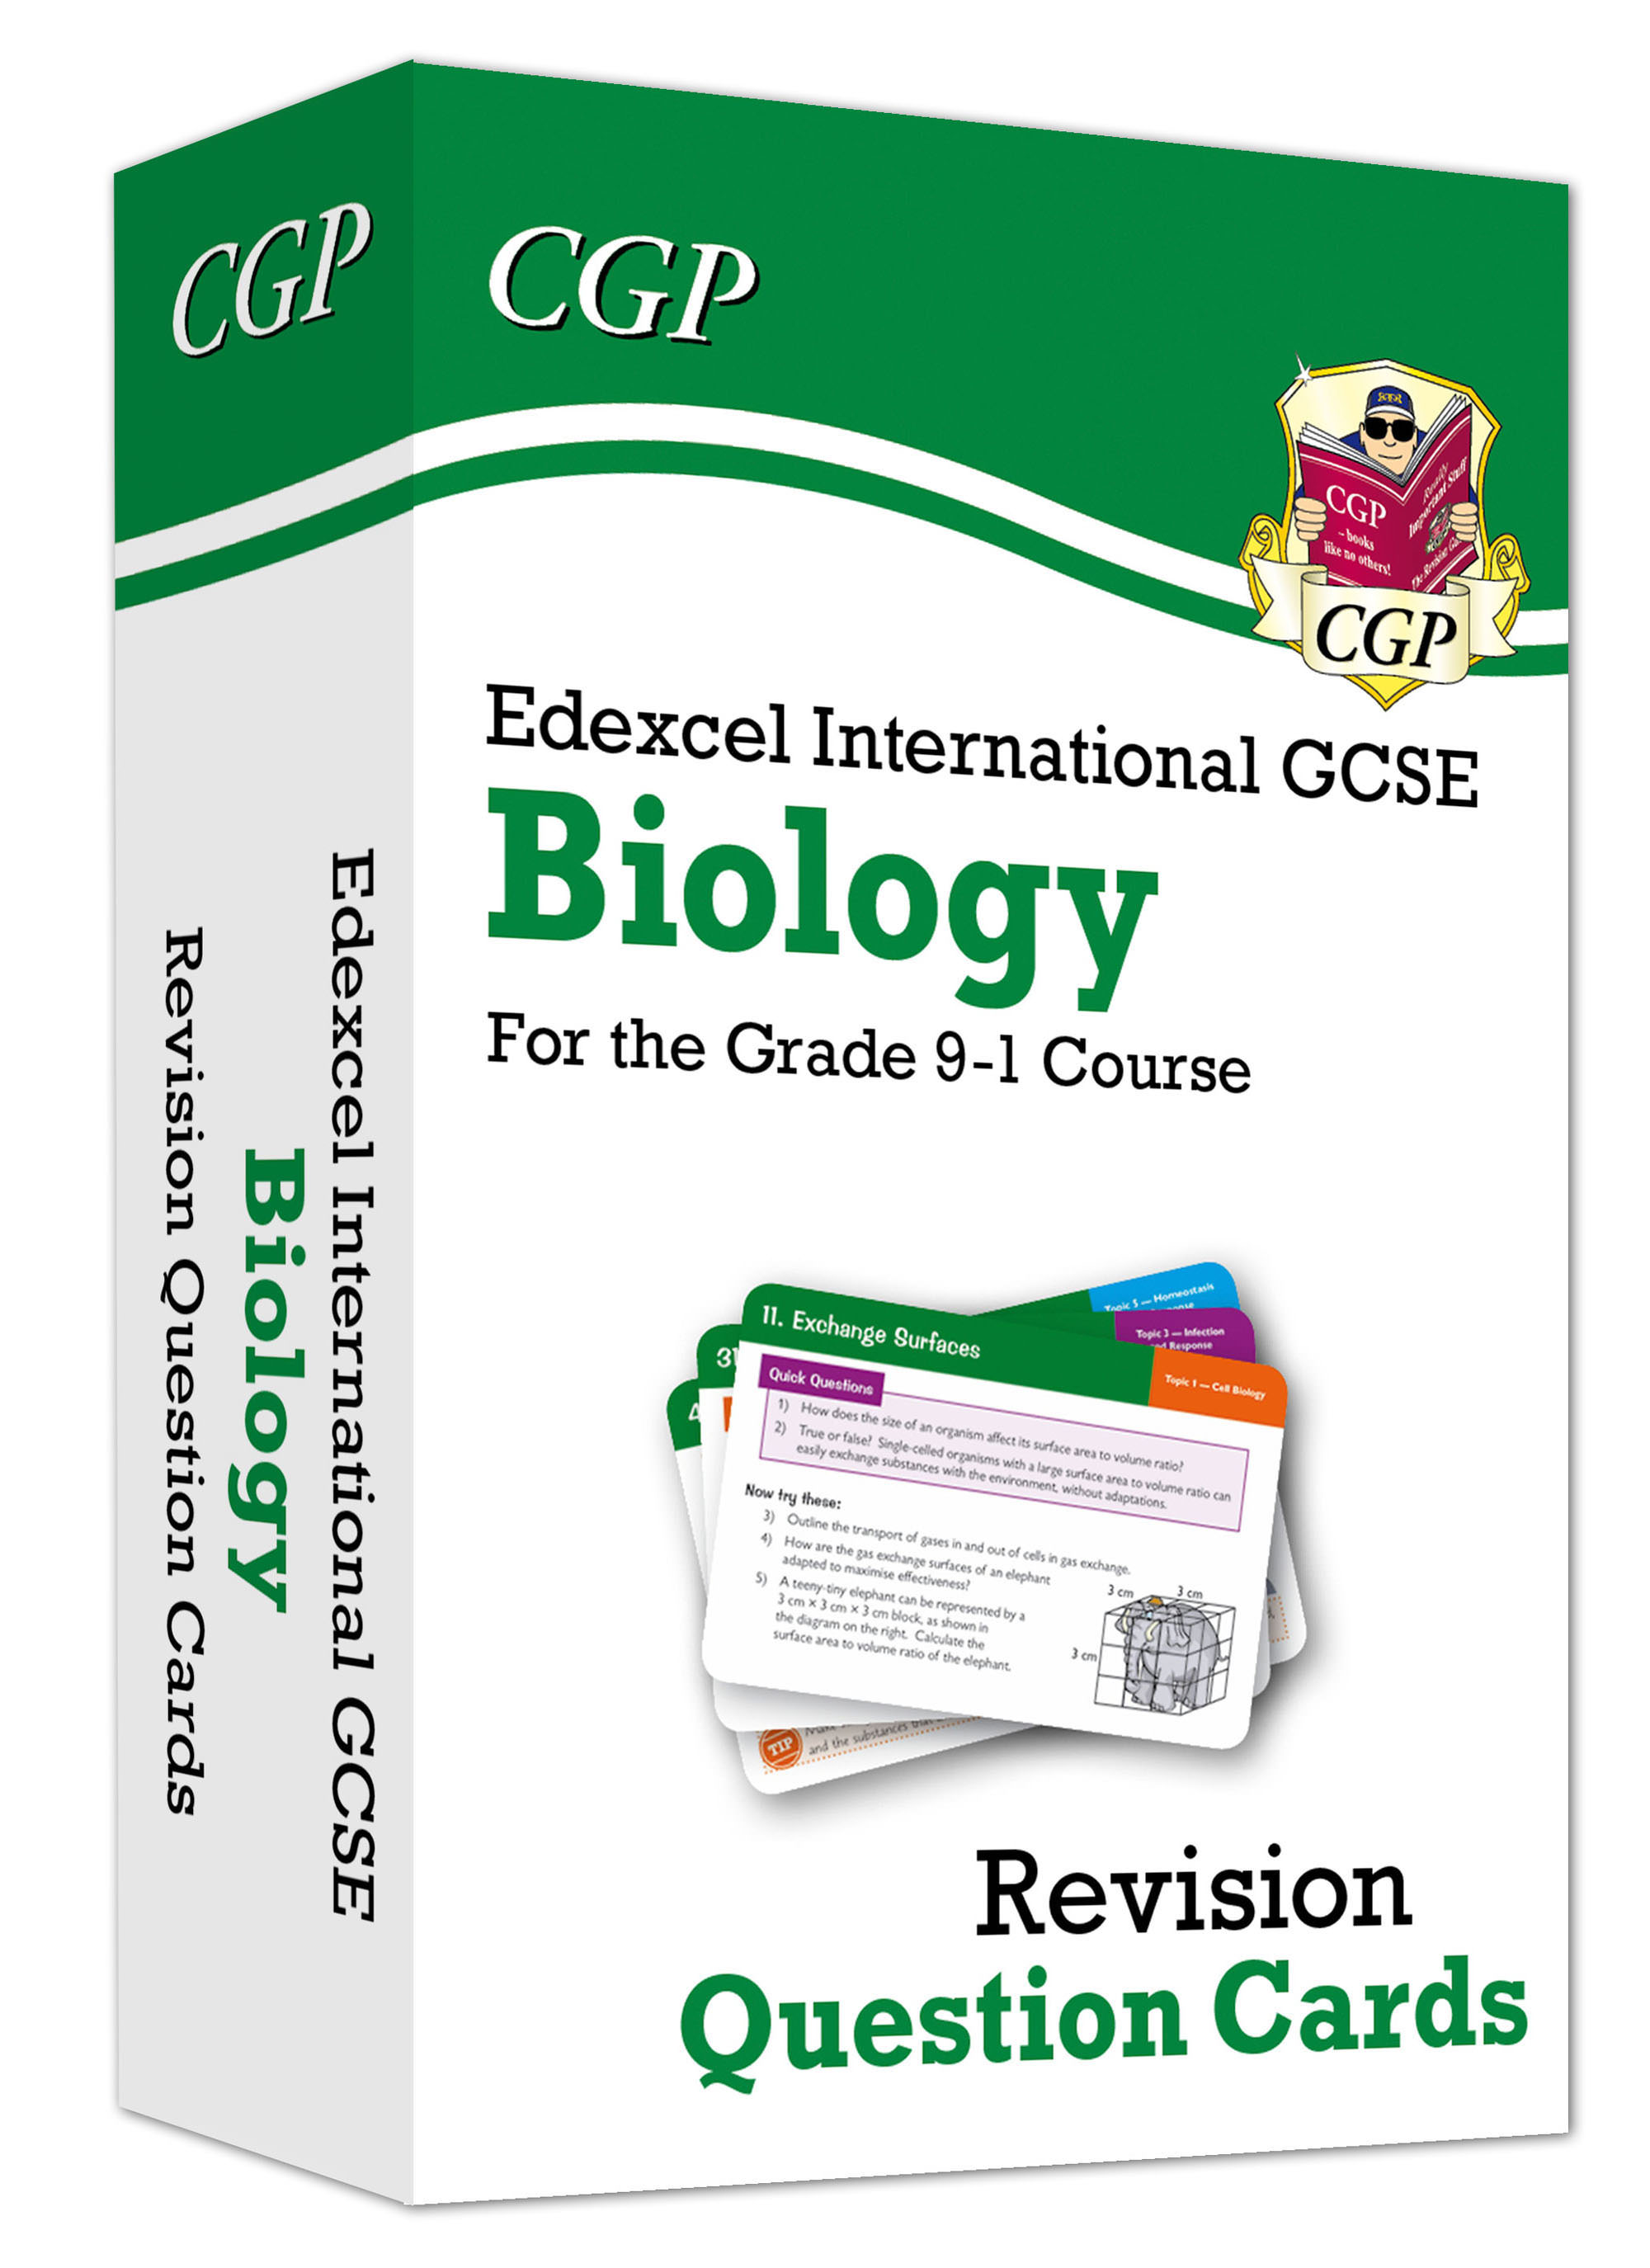 BEFI41DK - New Grade 9-1 Edexcel International GCSE Biology: Revision Question Cards